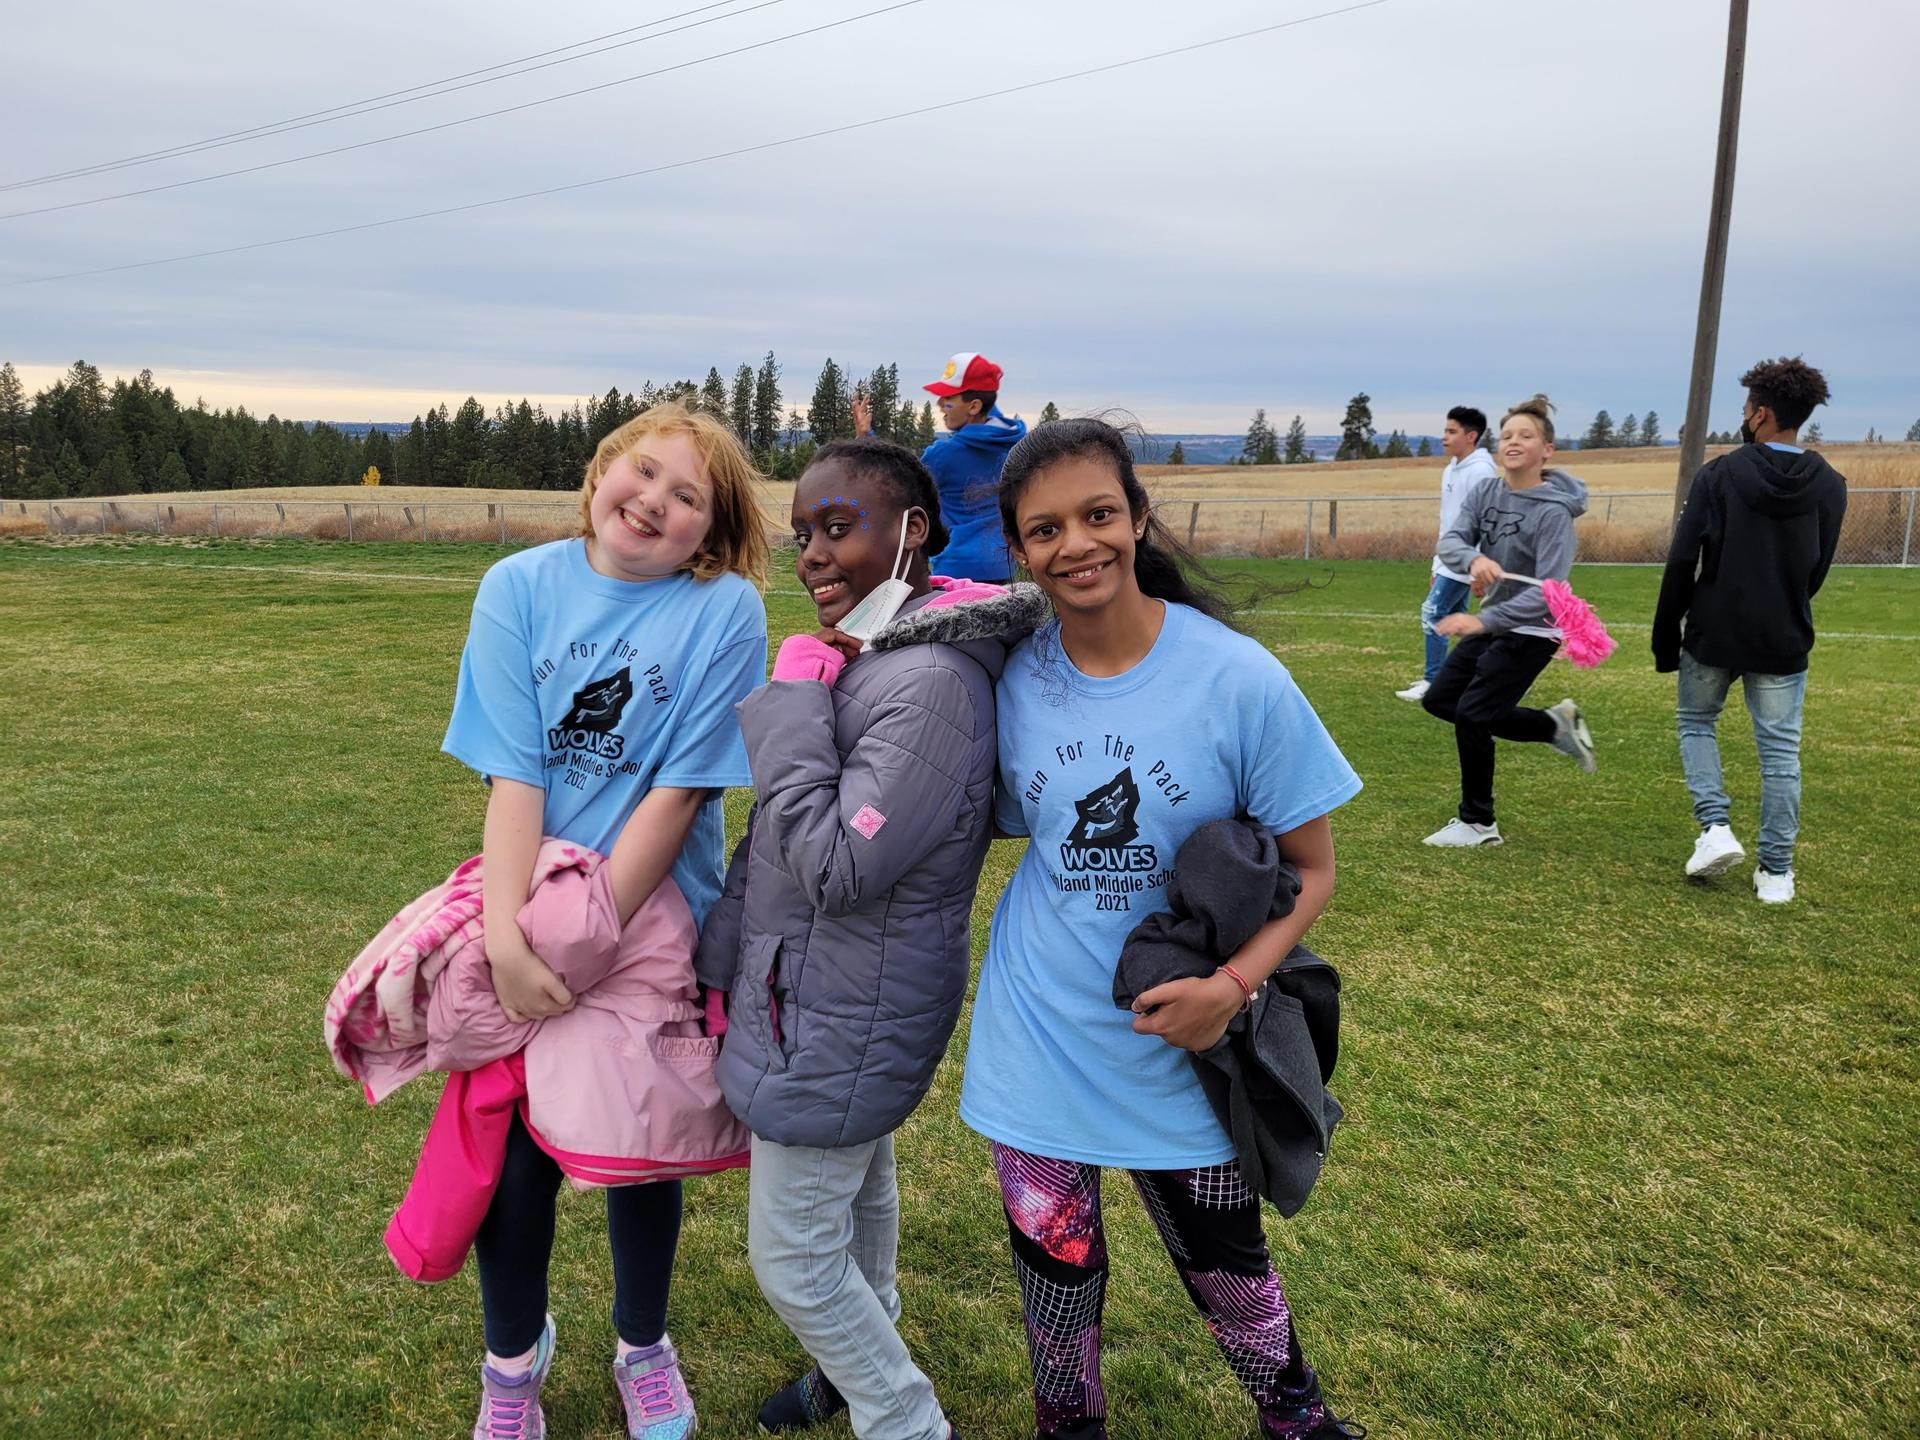 Highland Middle School students at Fund Run celebration